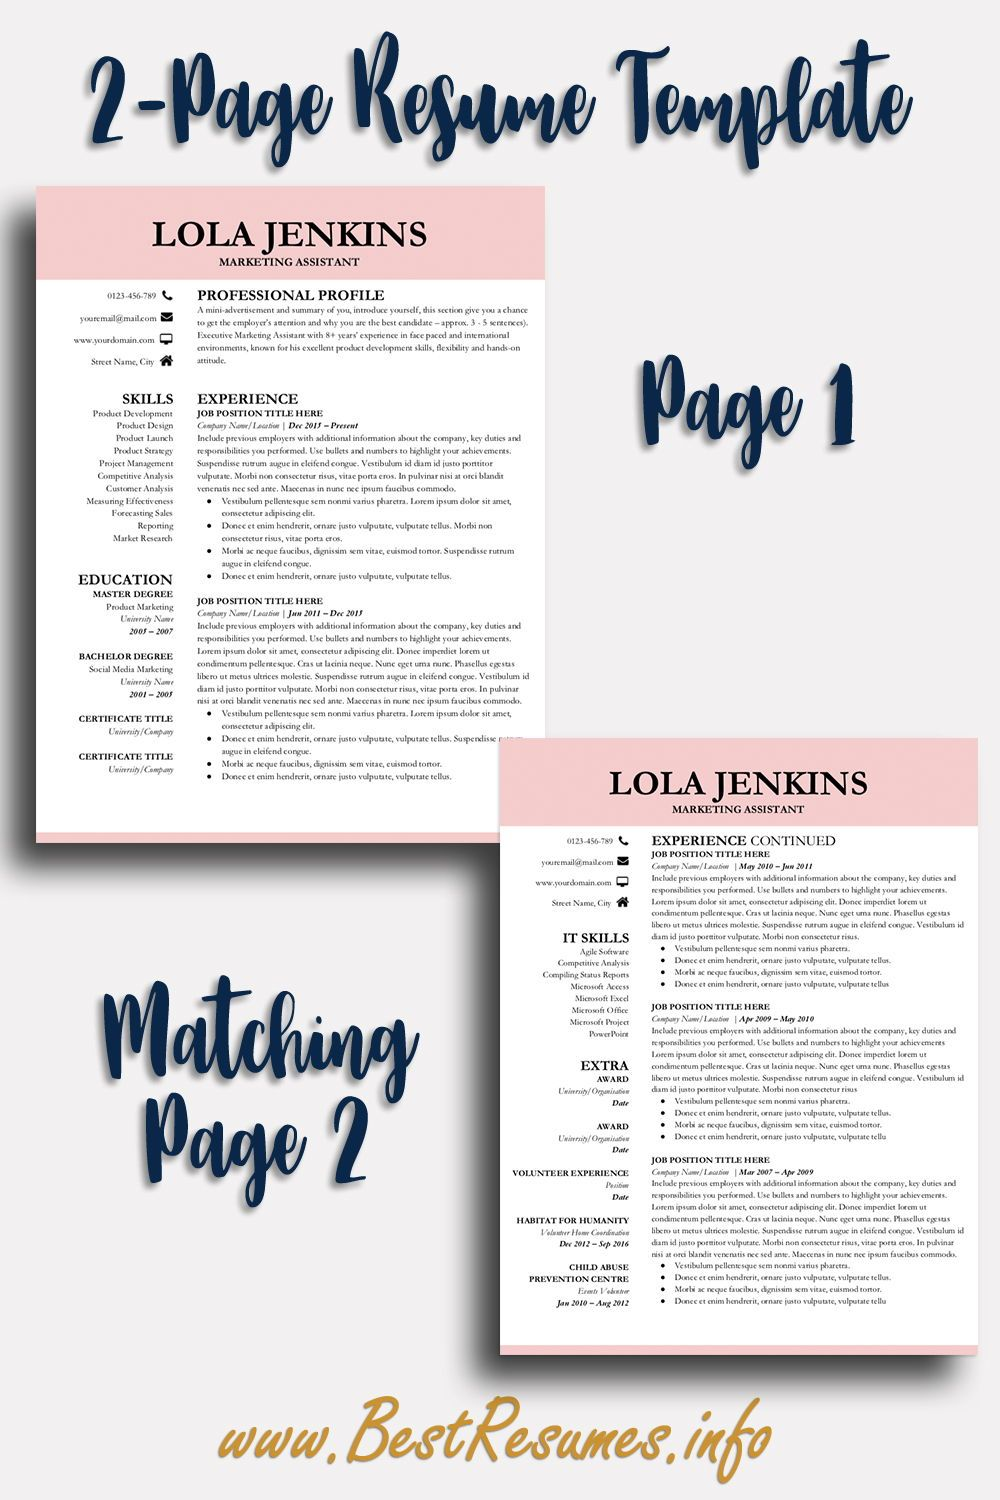 Professional Resume Template Lola Jenkins - Teacher resume template, Resume template professional, Business resume template, Job resume template, Creative resume template layout, Creative resume templates - Resume Template Lola Jenkins  A modern professional resume template for Google Docs, very easy to edit resume template! Check more here